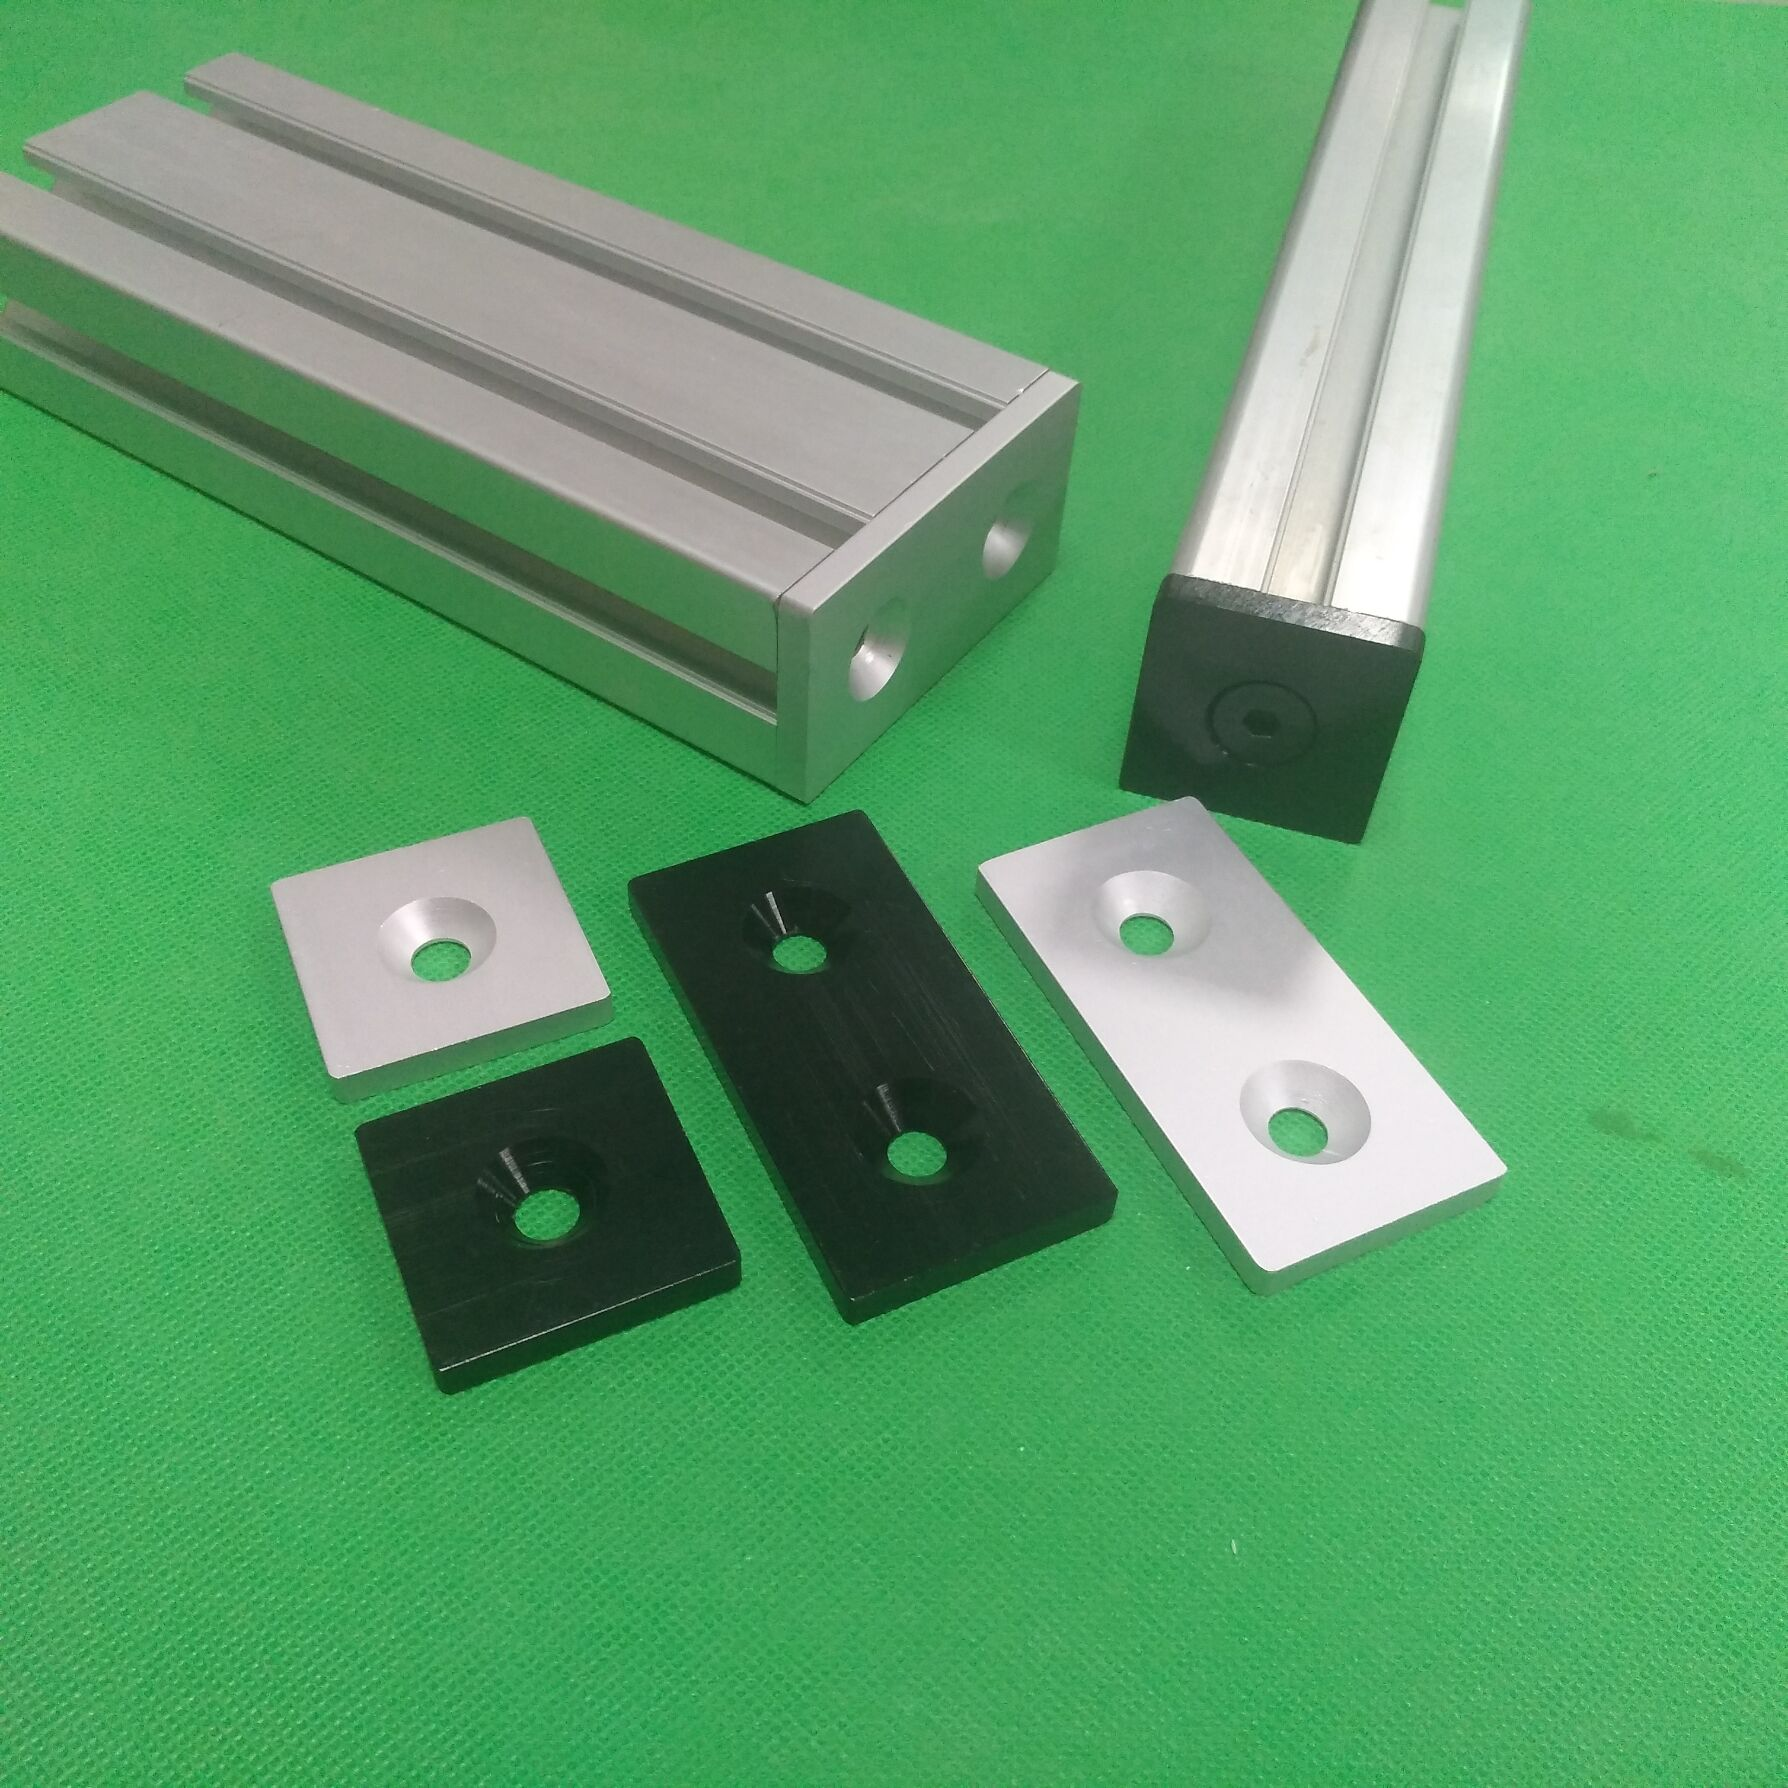 2040 European Standard Profile Fittings Aluminum Profile Cover End Cover Plate 5mmx20mmx40mm 6063-T5